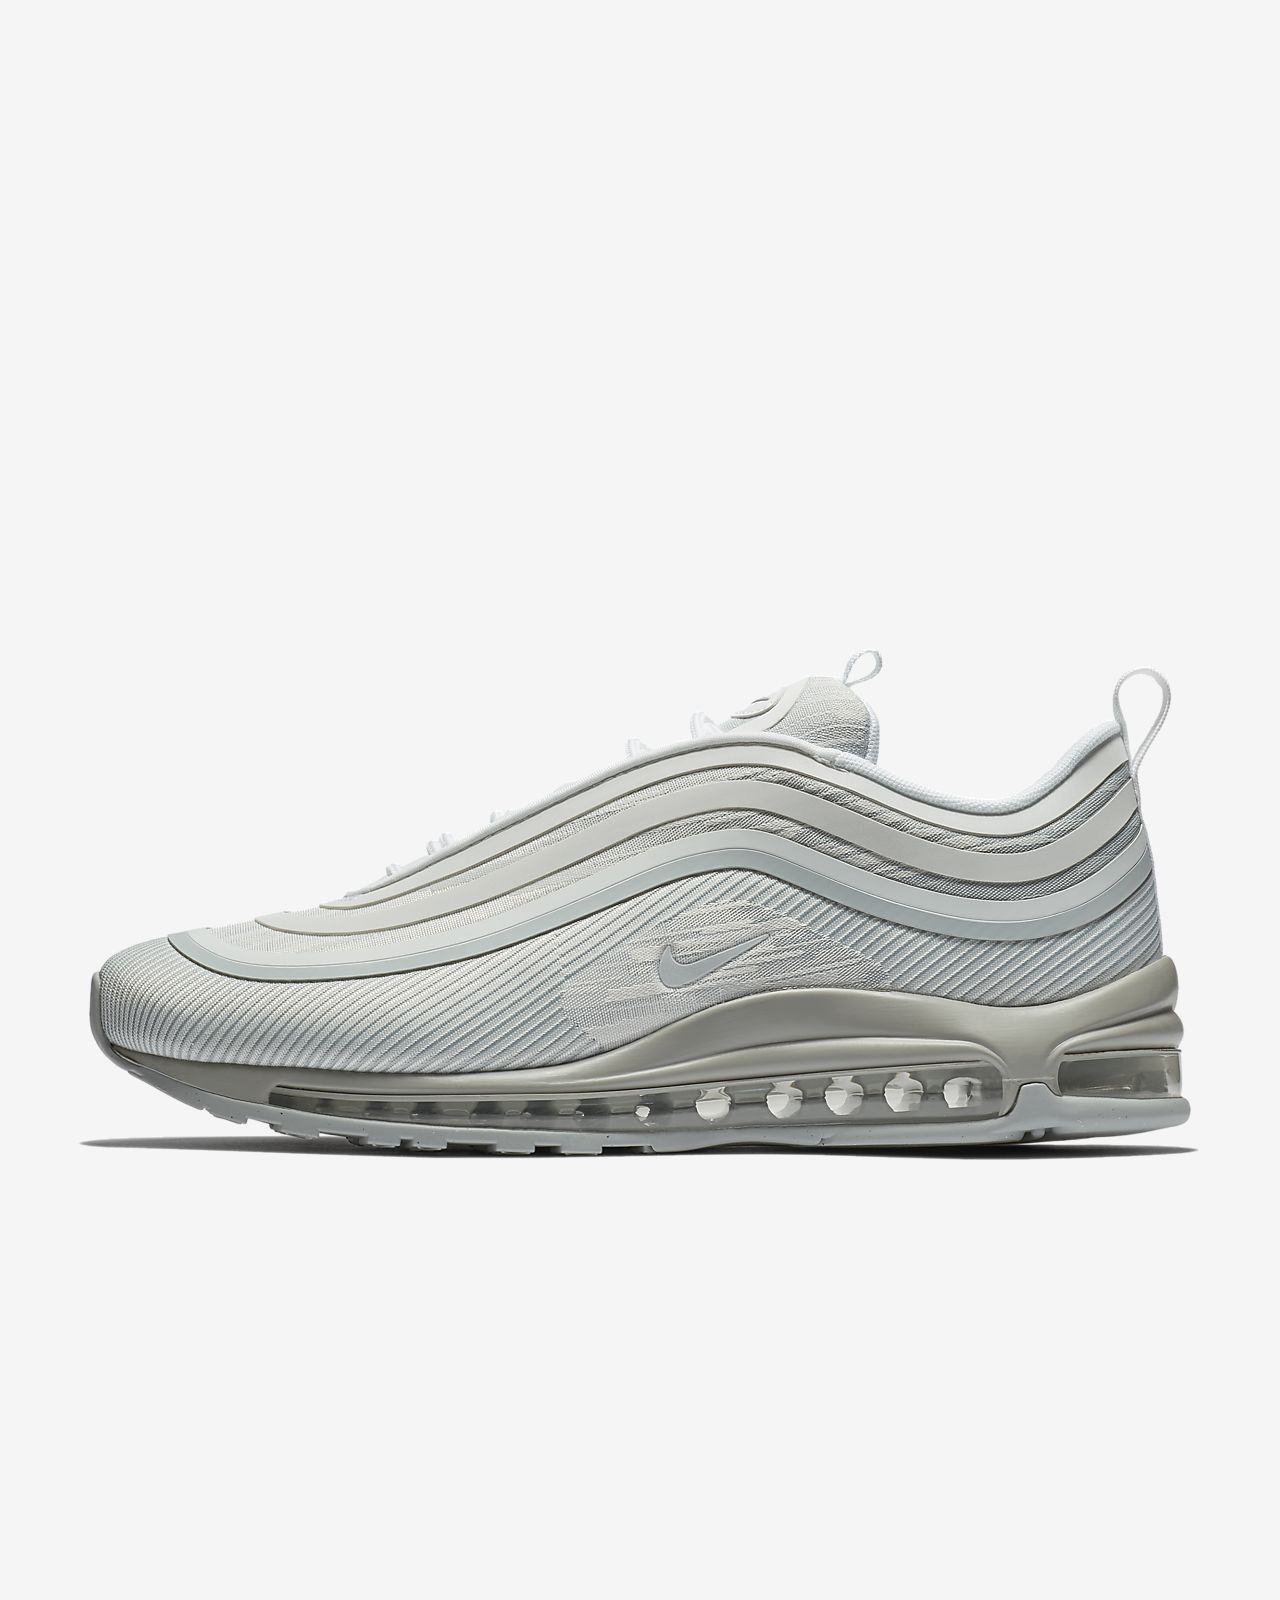 fcec14da11 Nike Air Max 97 Ultra '17 Men's Shoe. Nike.com CA